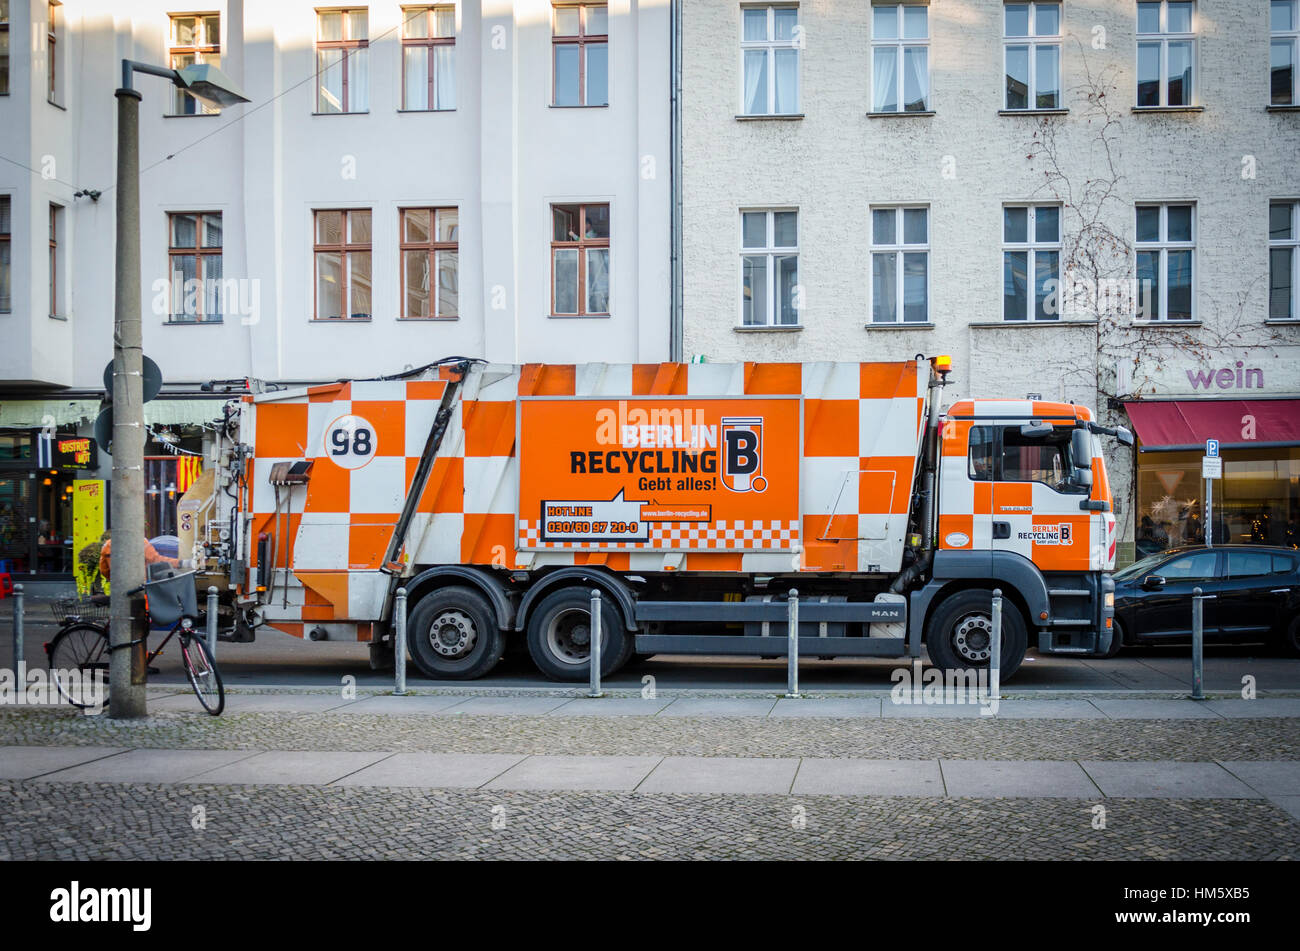 Recycling collection bin lorry, Berlin, Germany - Stock Image